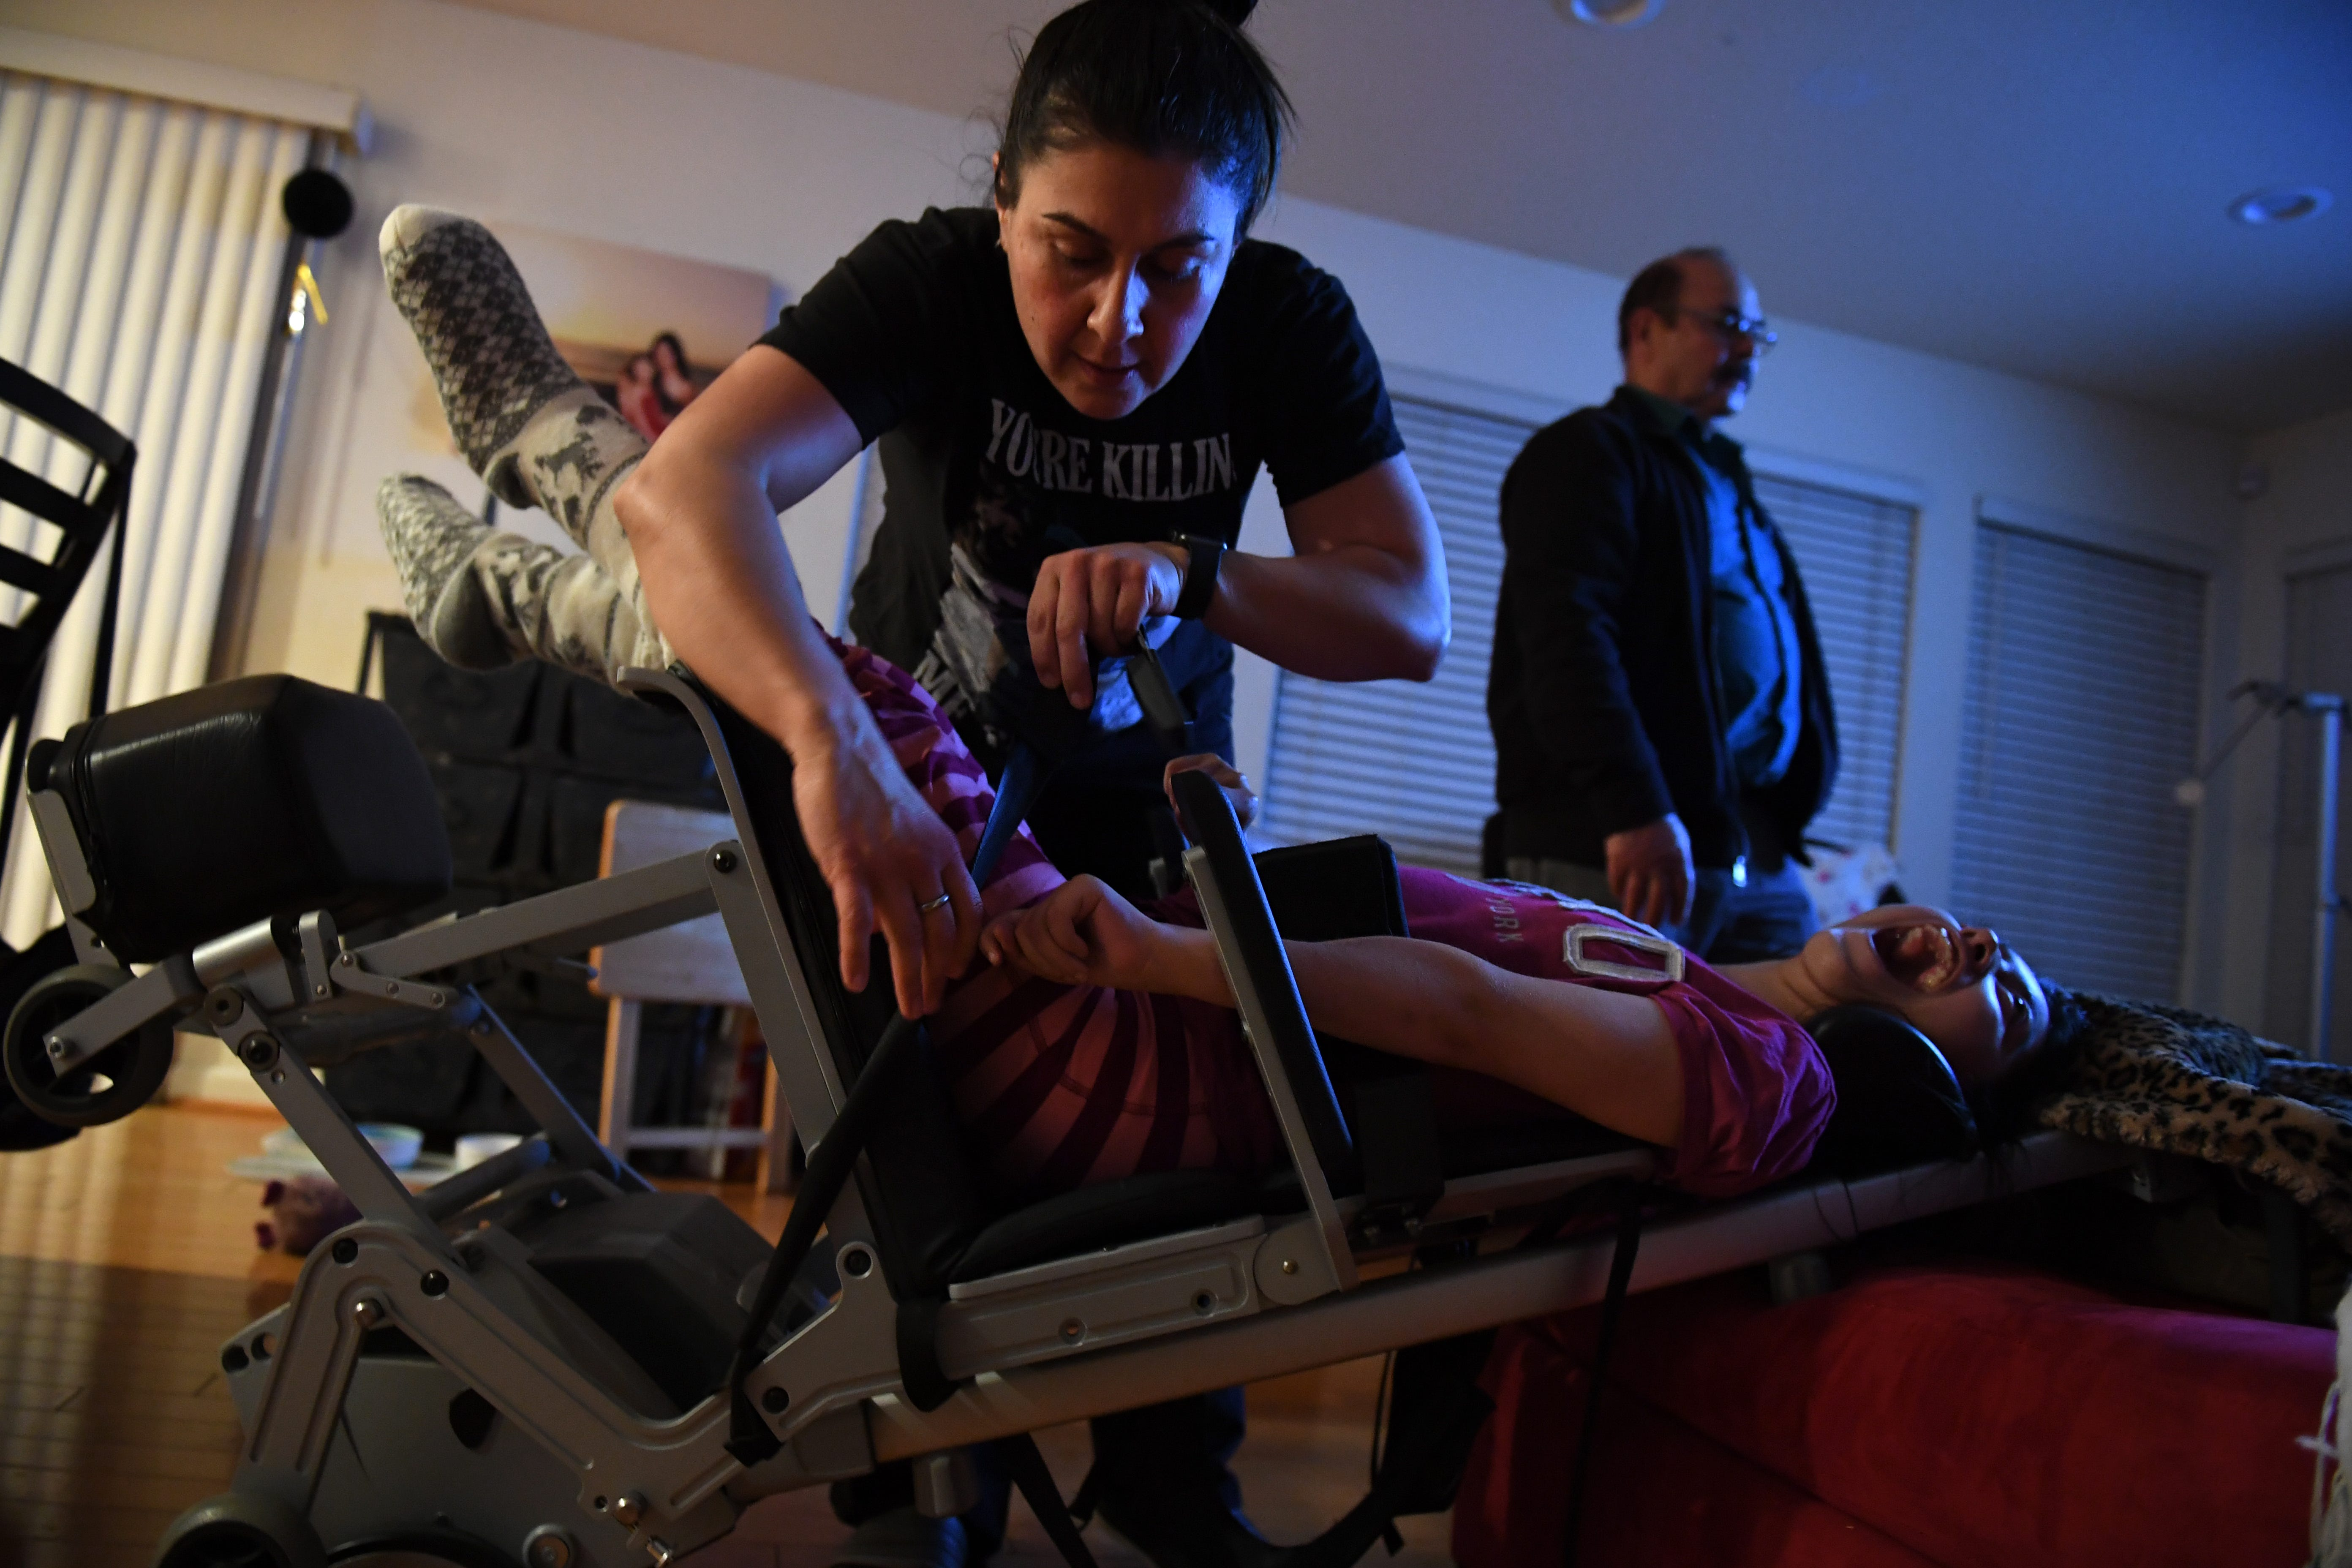 Maribel Landeros straps in her daughter Karizma into her chair one night at her Salinas home. Maribel's father stands behind her as a TV plays.